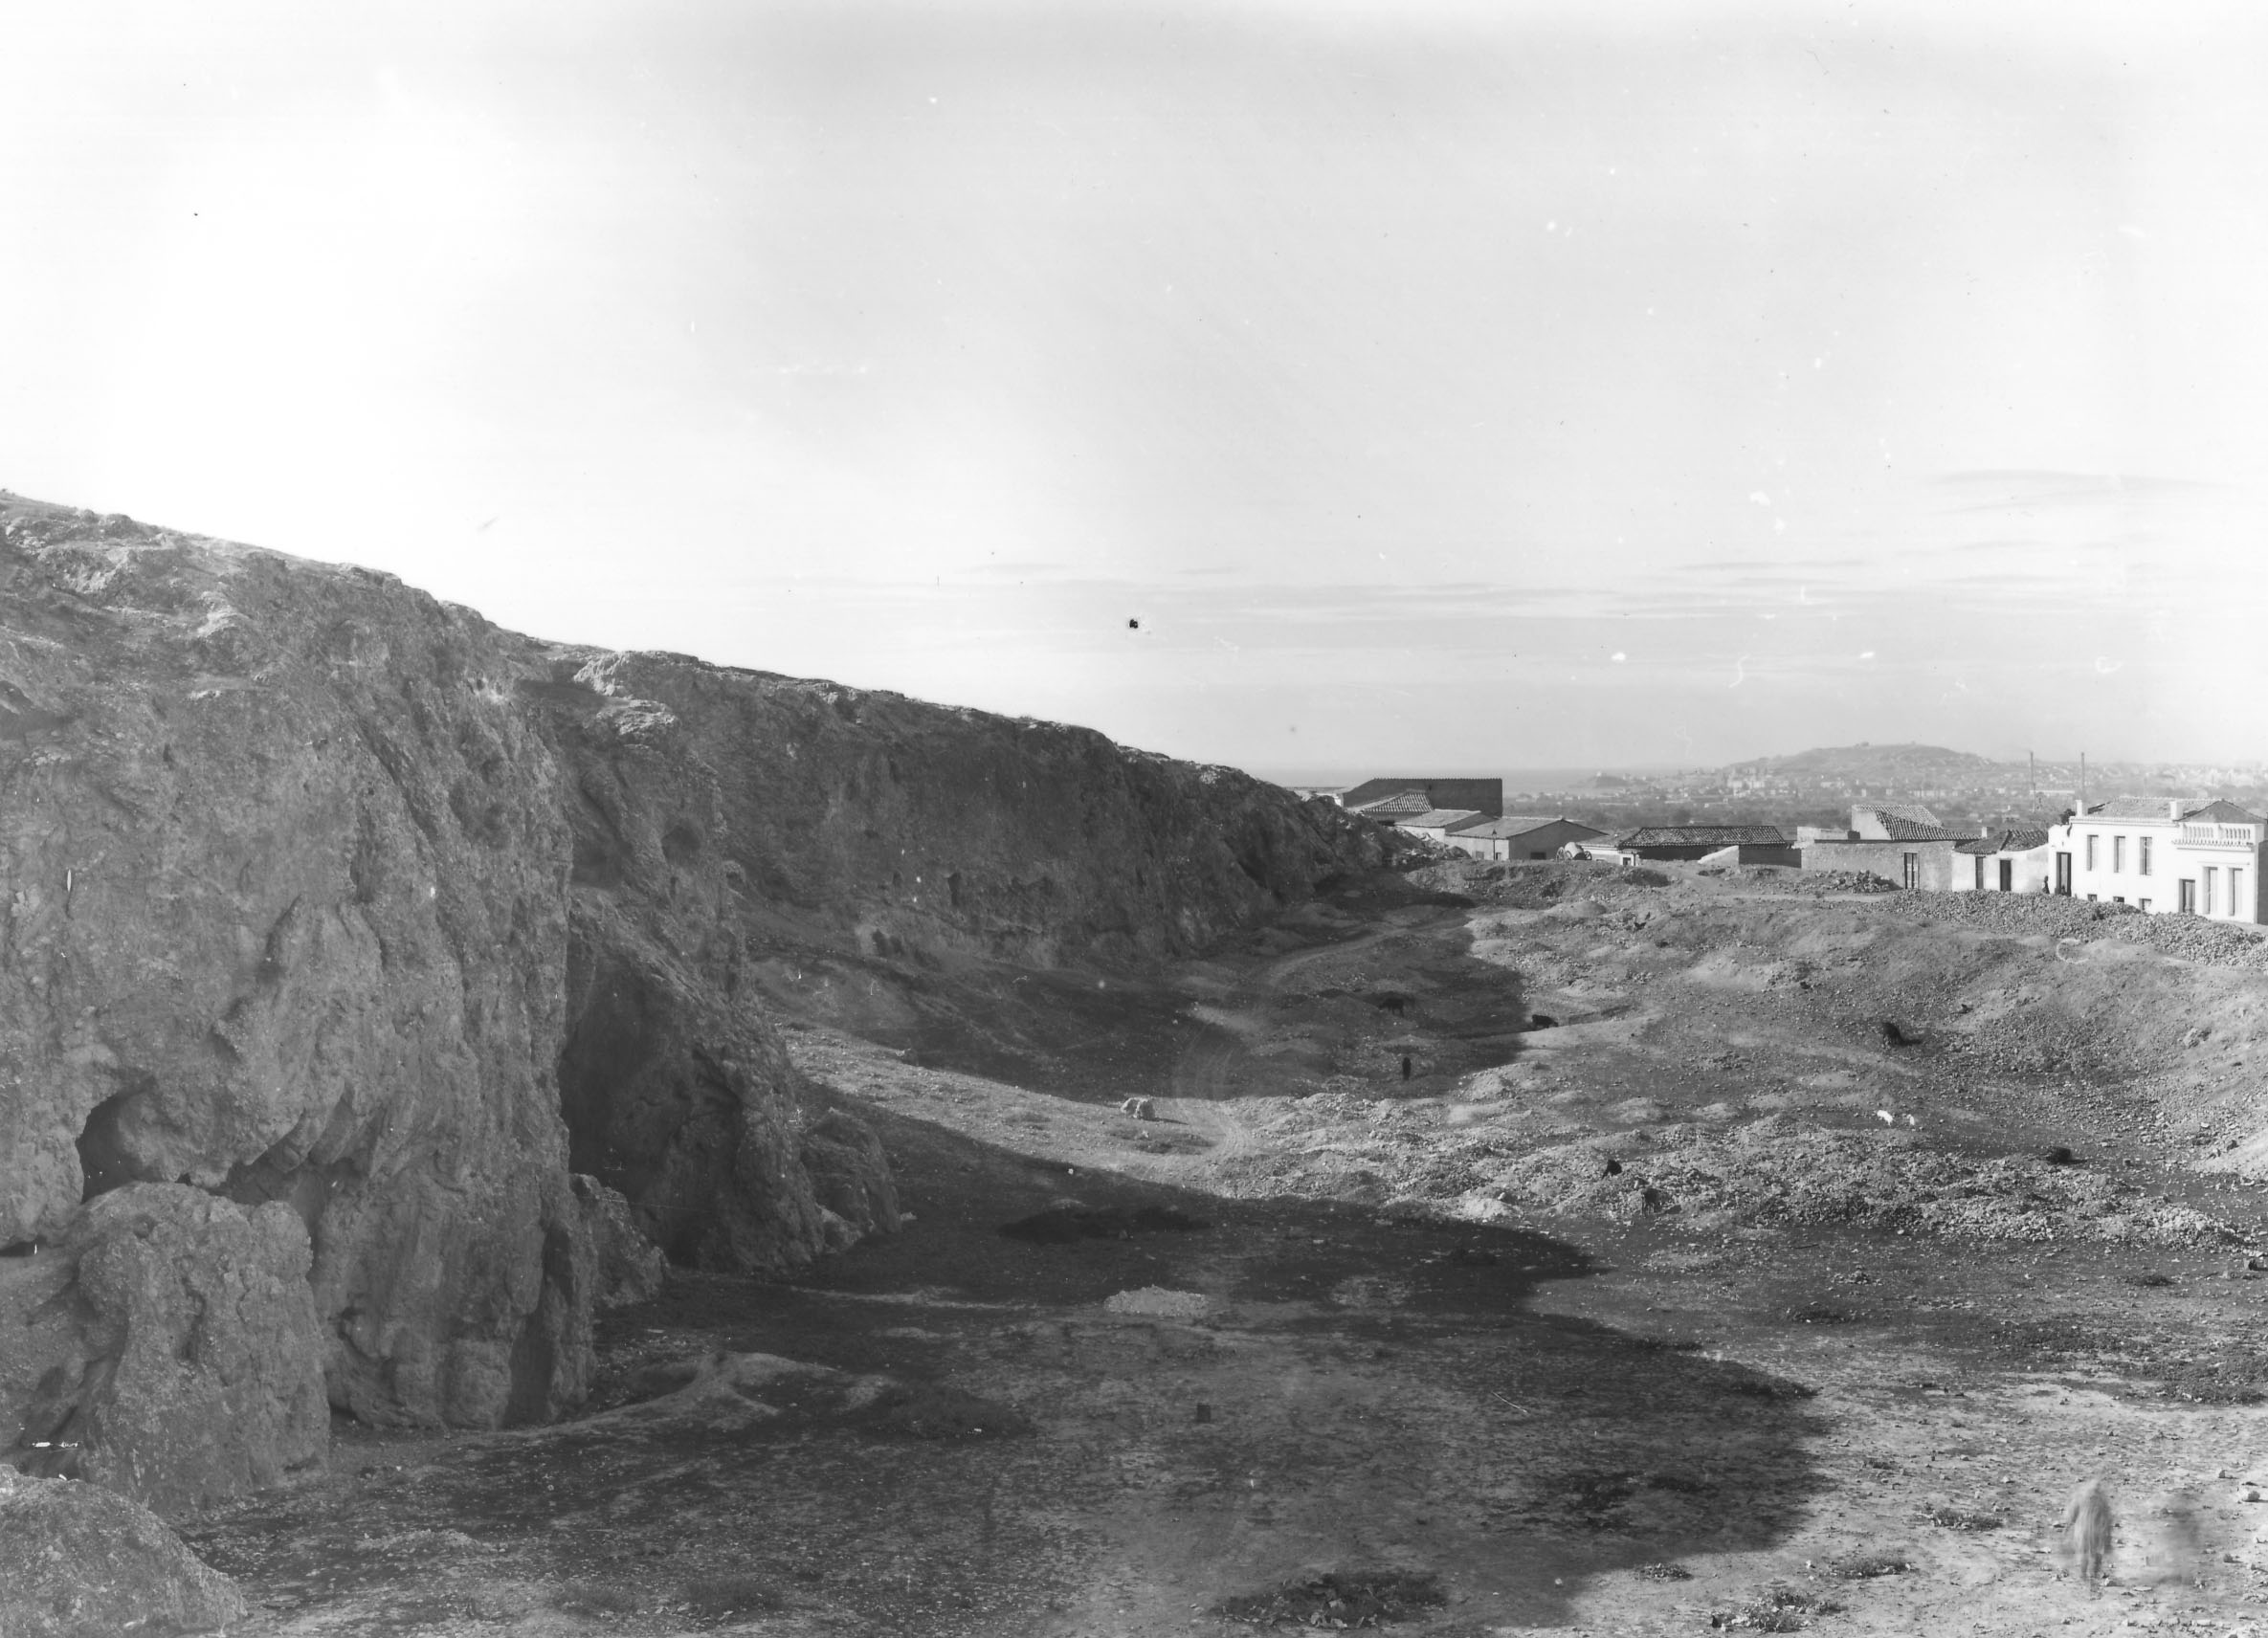 The barathron was an ancient quarry and place of executions; the most remote area of ancient Athens (Nicholson Museum, Professor W.J. Woodhouse Collection).